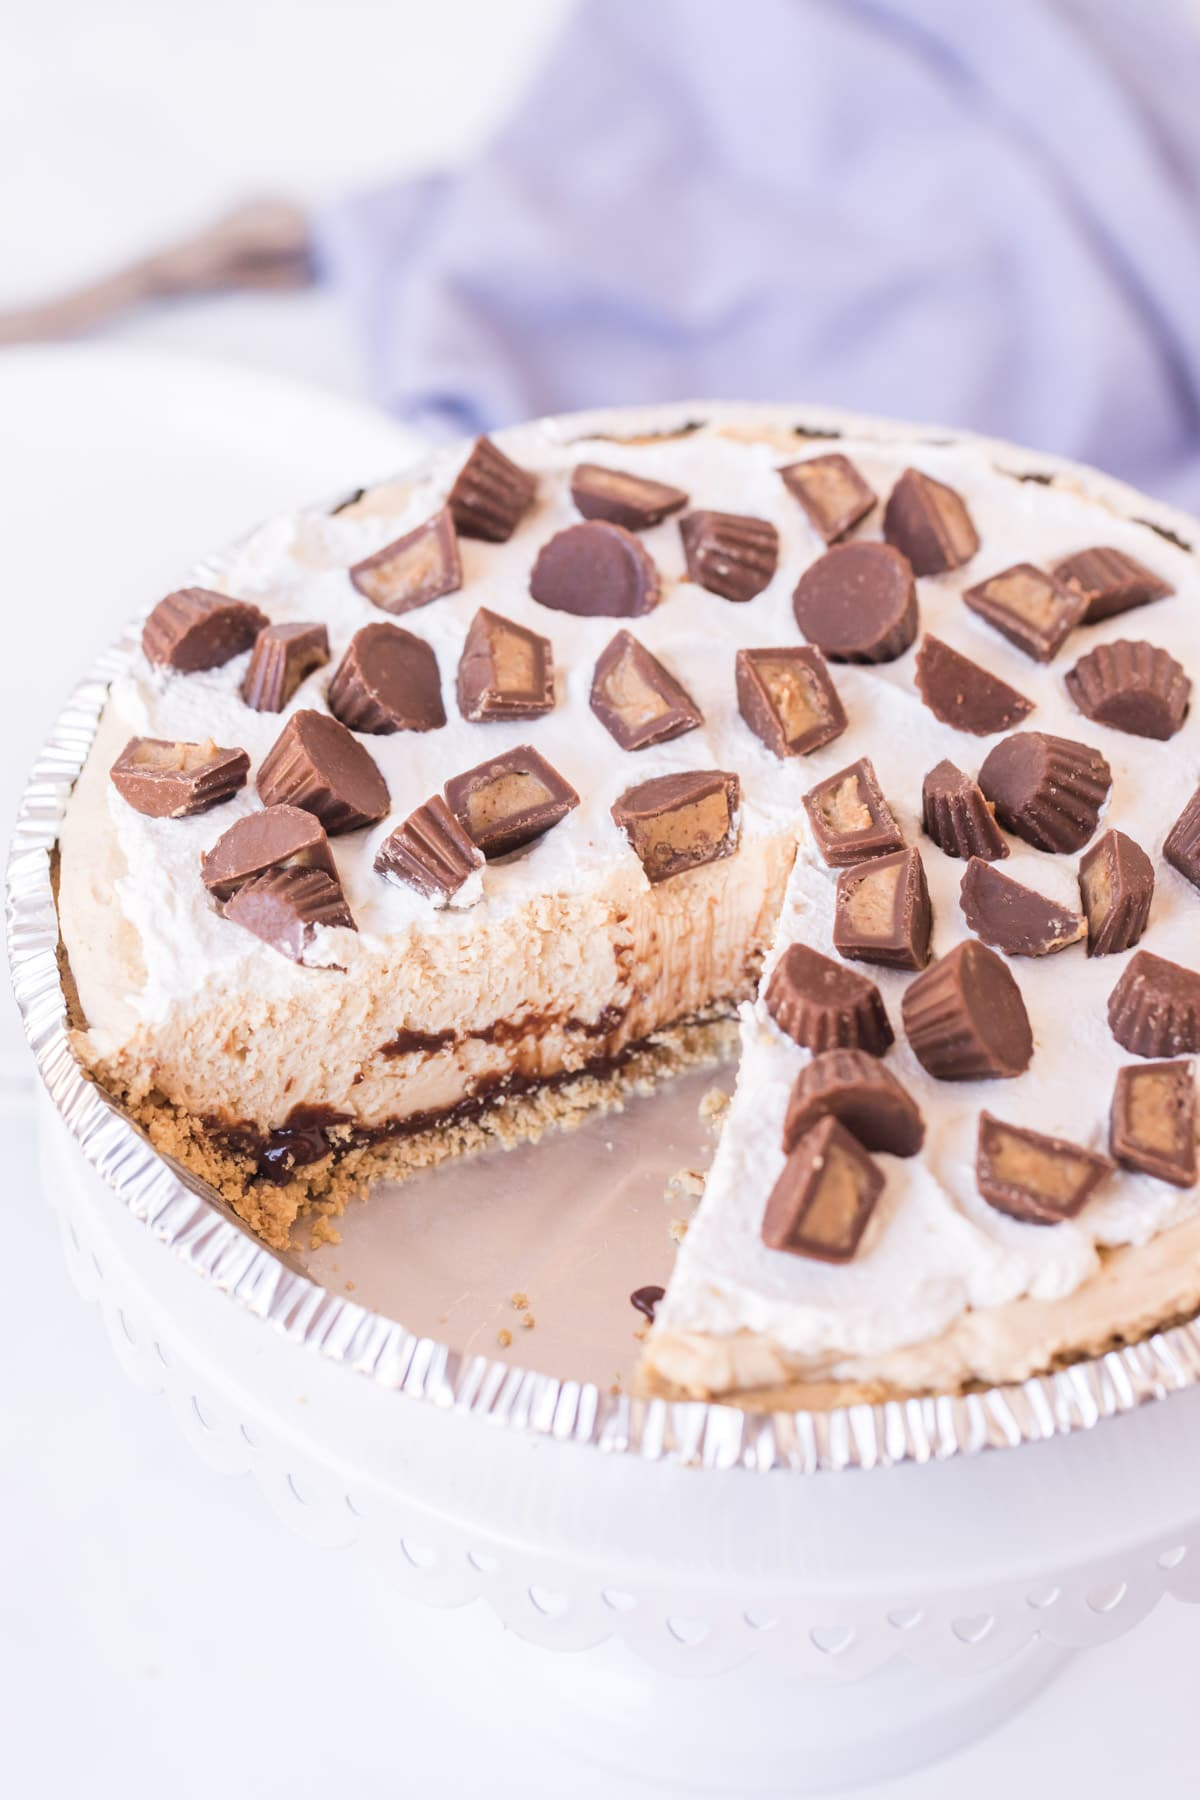 Reese's peanut butter pie with a slice cut out